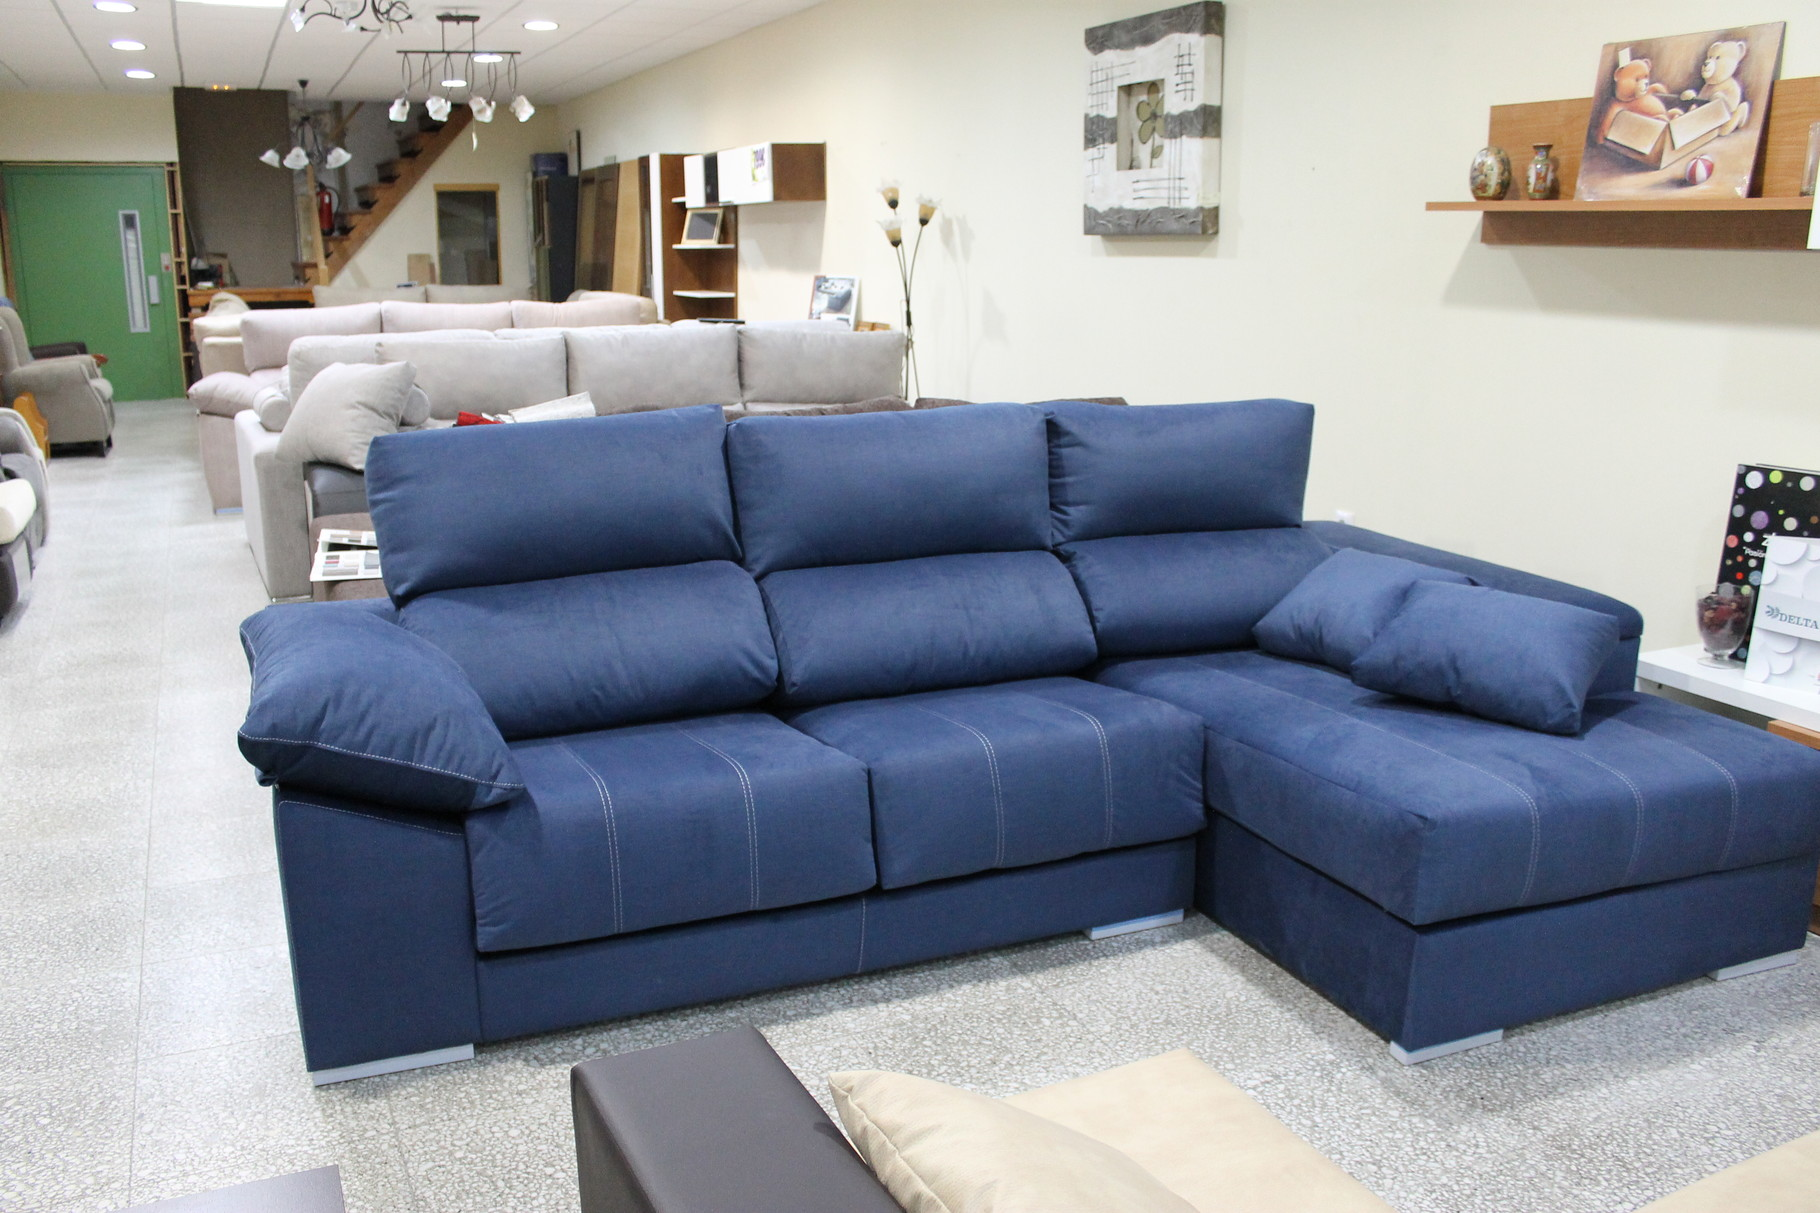 Sofa chaiselonge atlanta gran surtido en salones for Sofa cheslong